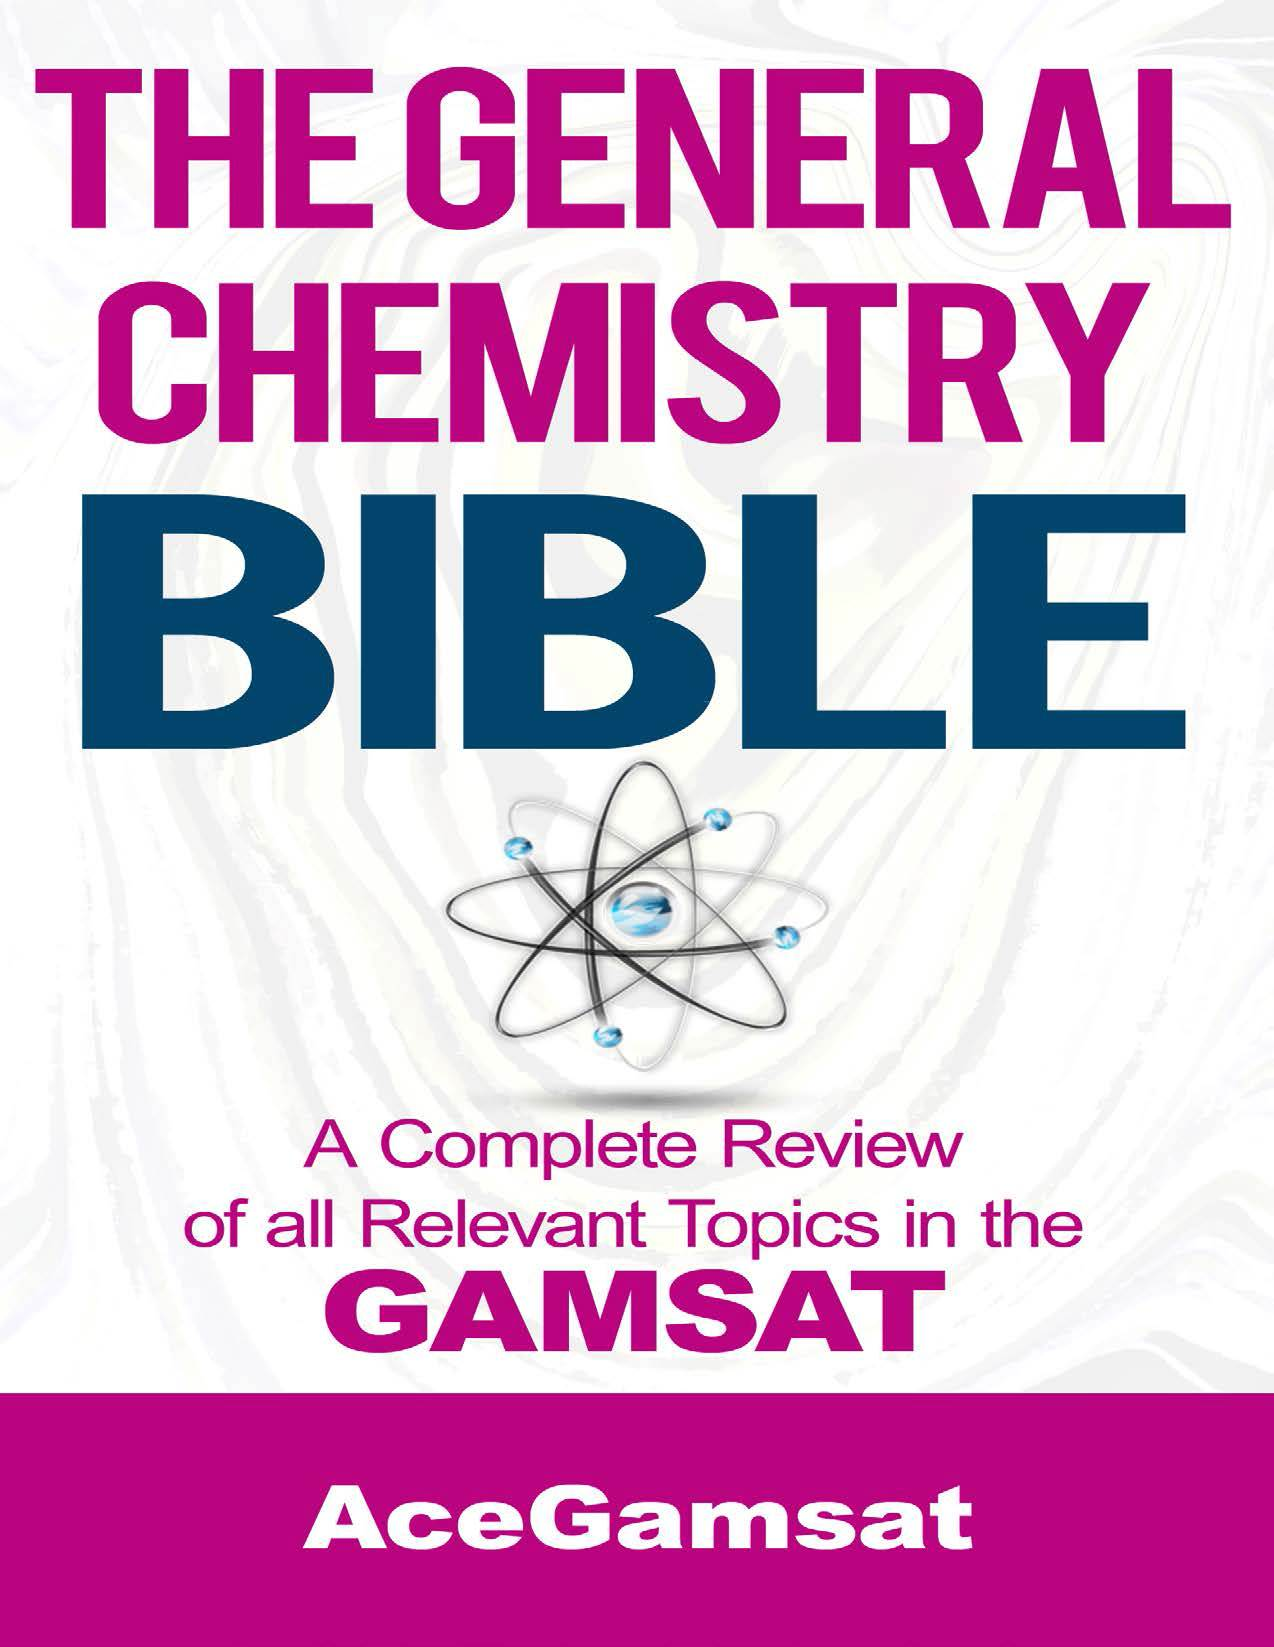 General Chemistry Bible GAMSAT